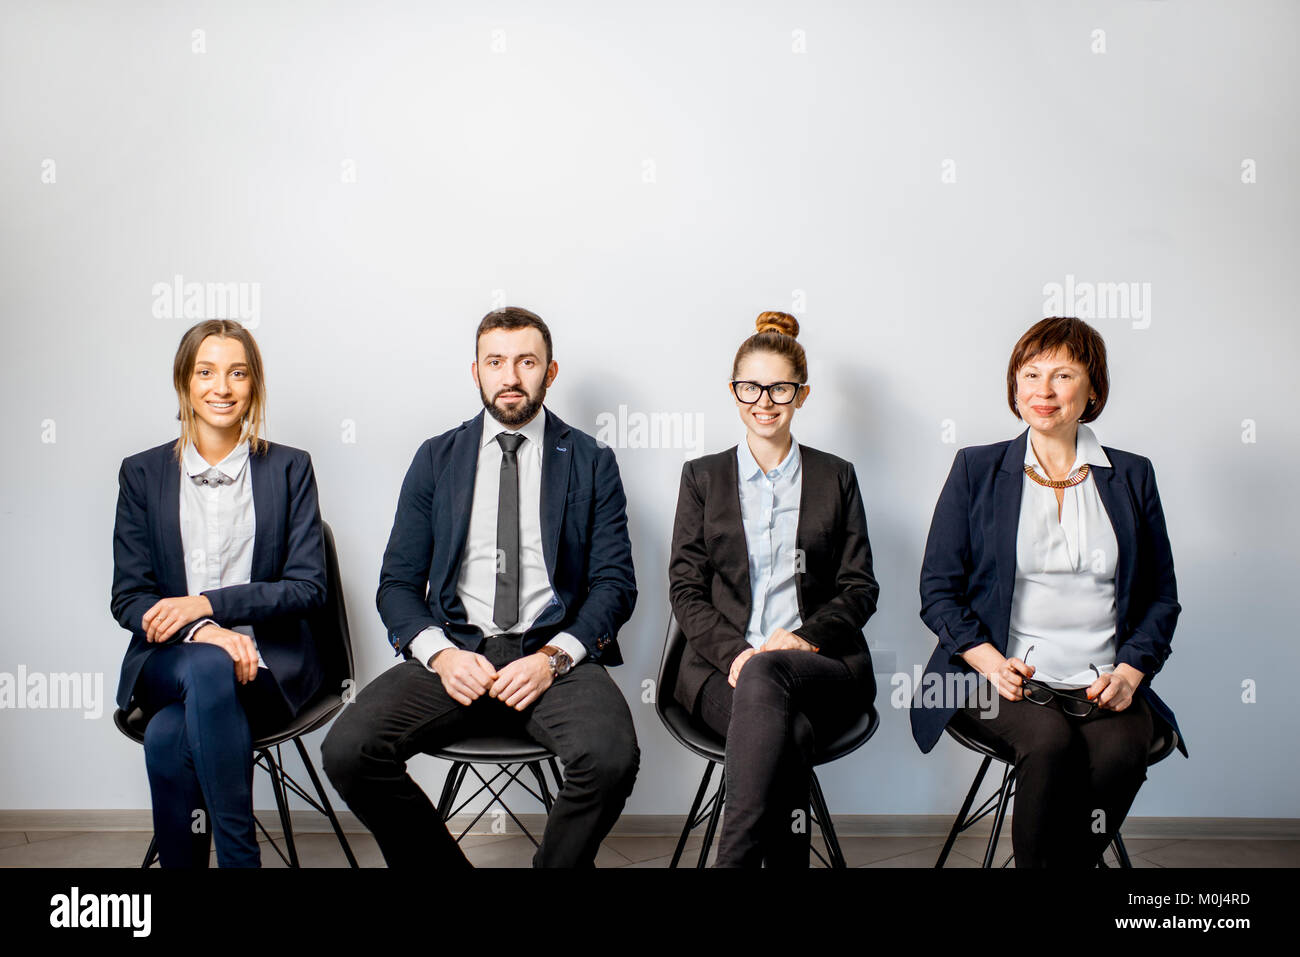 Business people sitting in a row - Stock Image